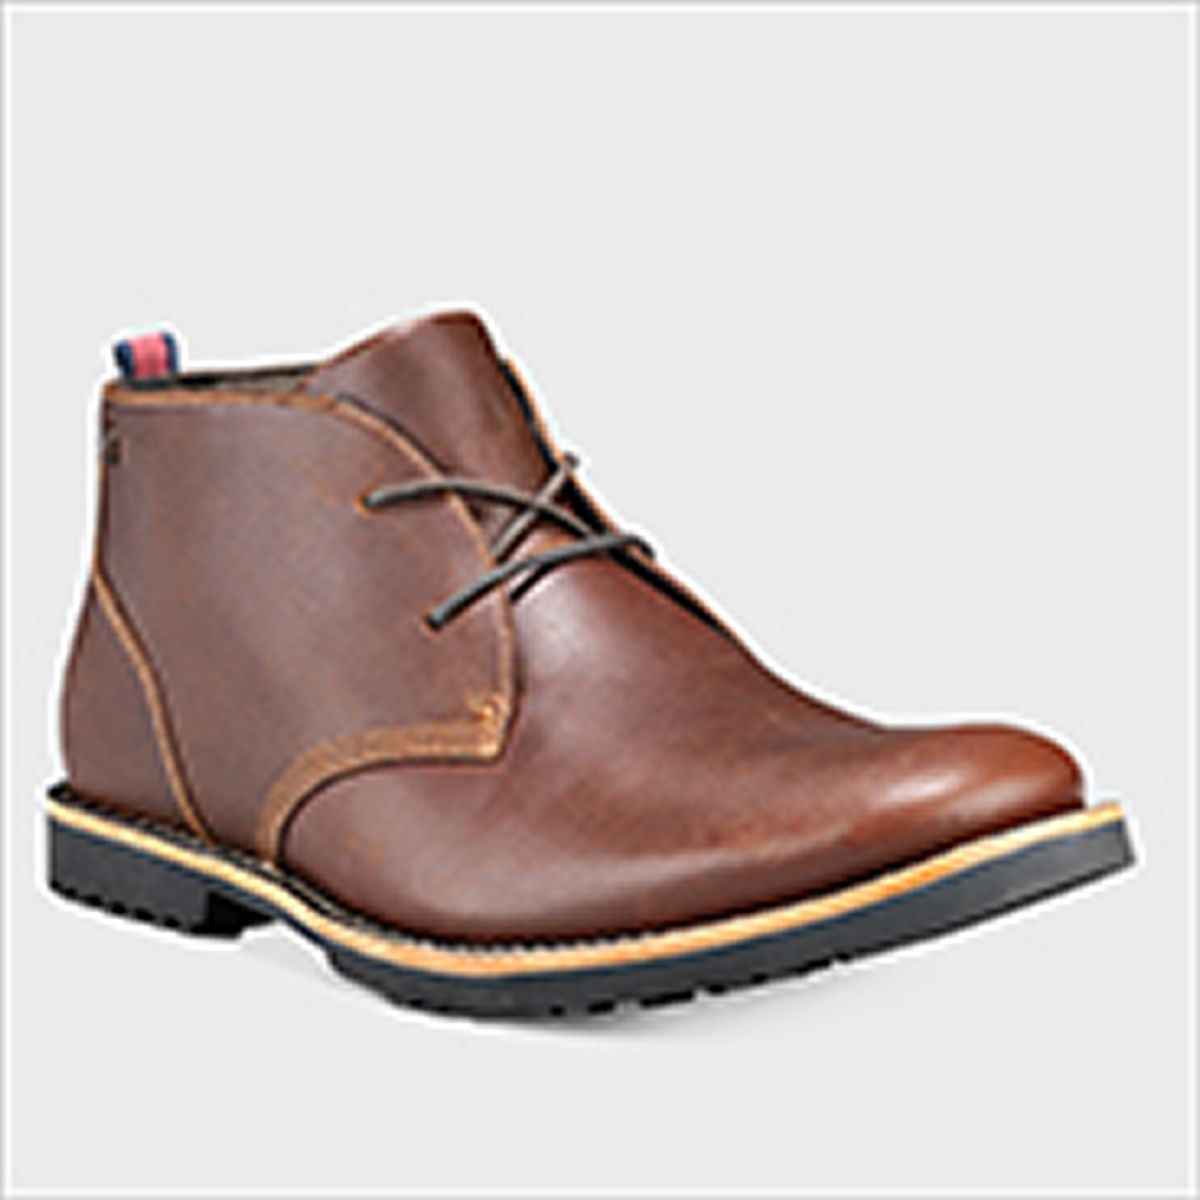 410fc4ad9cef Timberland Boots and Shoes For Men - Macy s